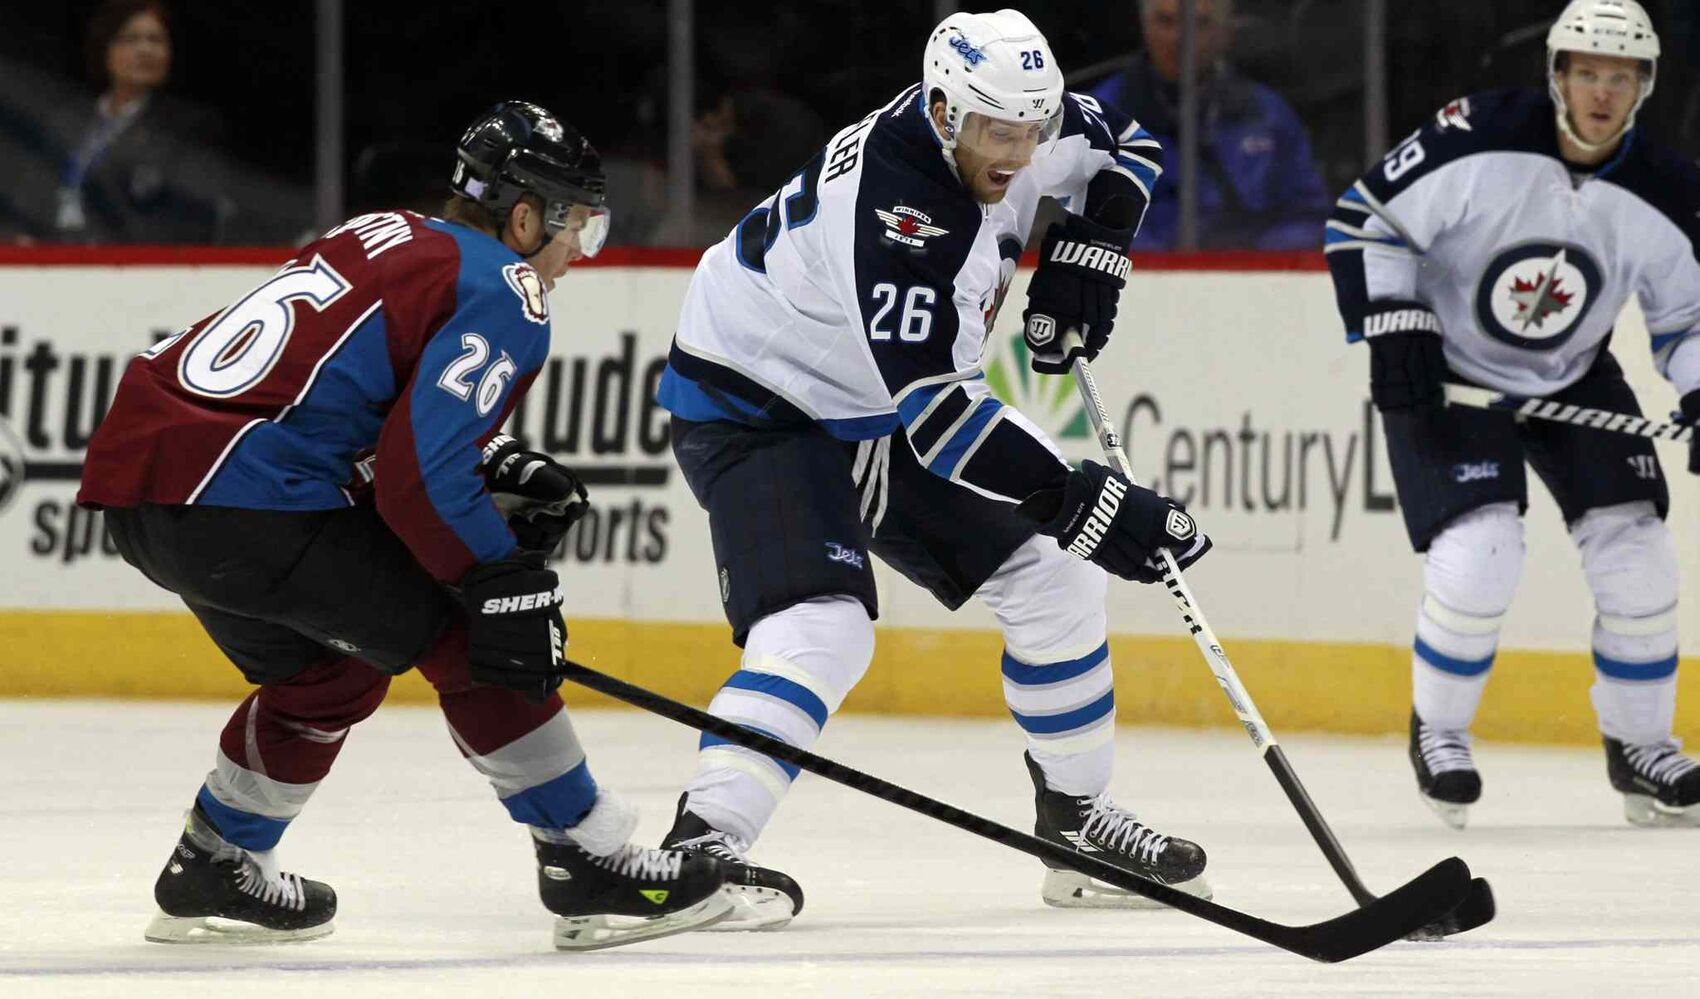 Winnipeg Jets winger Blake Wheeler (centre) picks up the loose puck as Colorado Avalanche center Paul Stastny (left) gives chase during the first period Sunday's game in Denver, Colo. (David Zalubowski / The Associated Press)